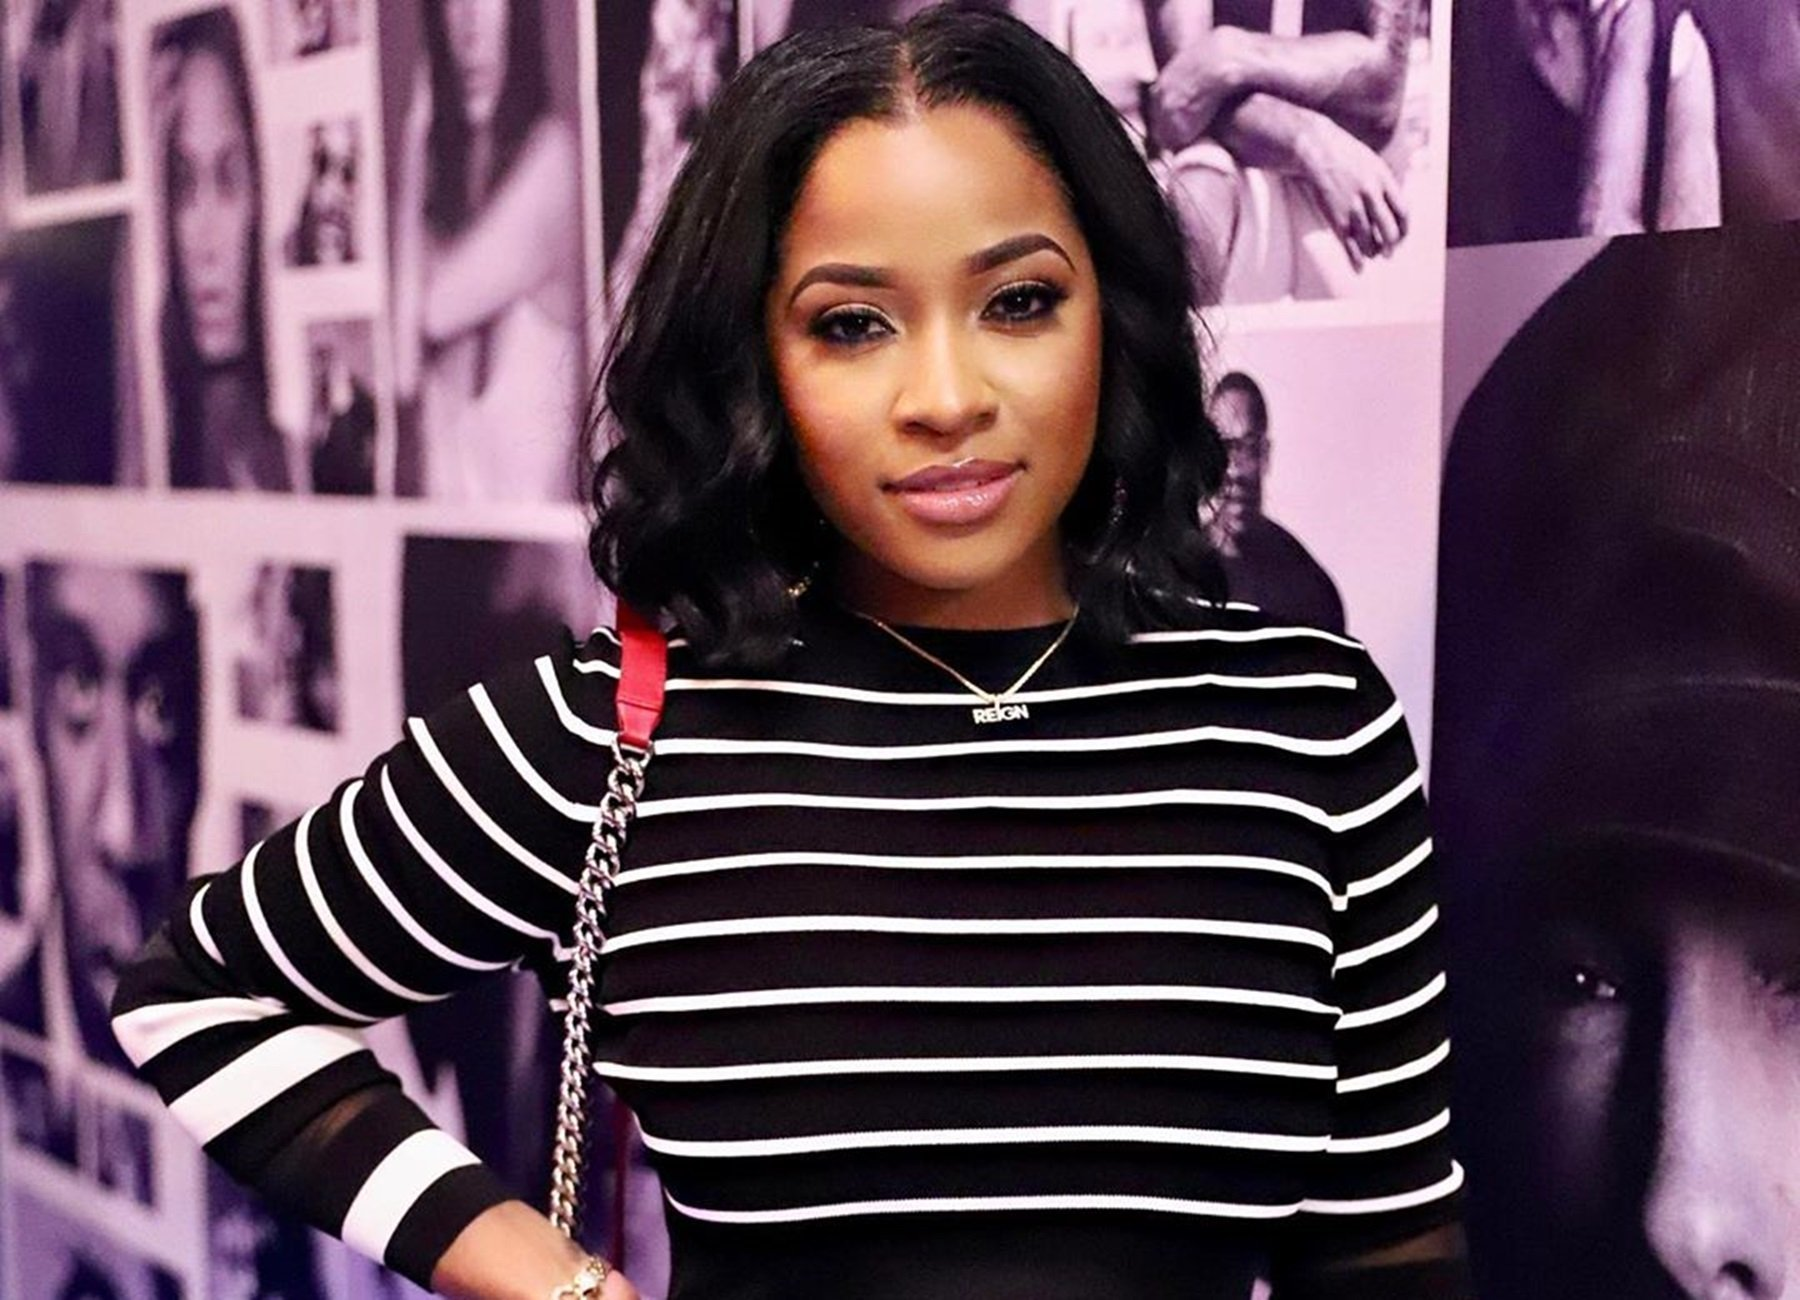 Toya Johnson Impresses Fans With Her Beauty – Check Out The New Hair She's Rocking